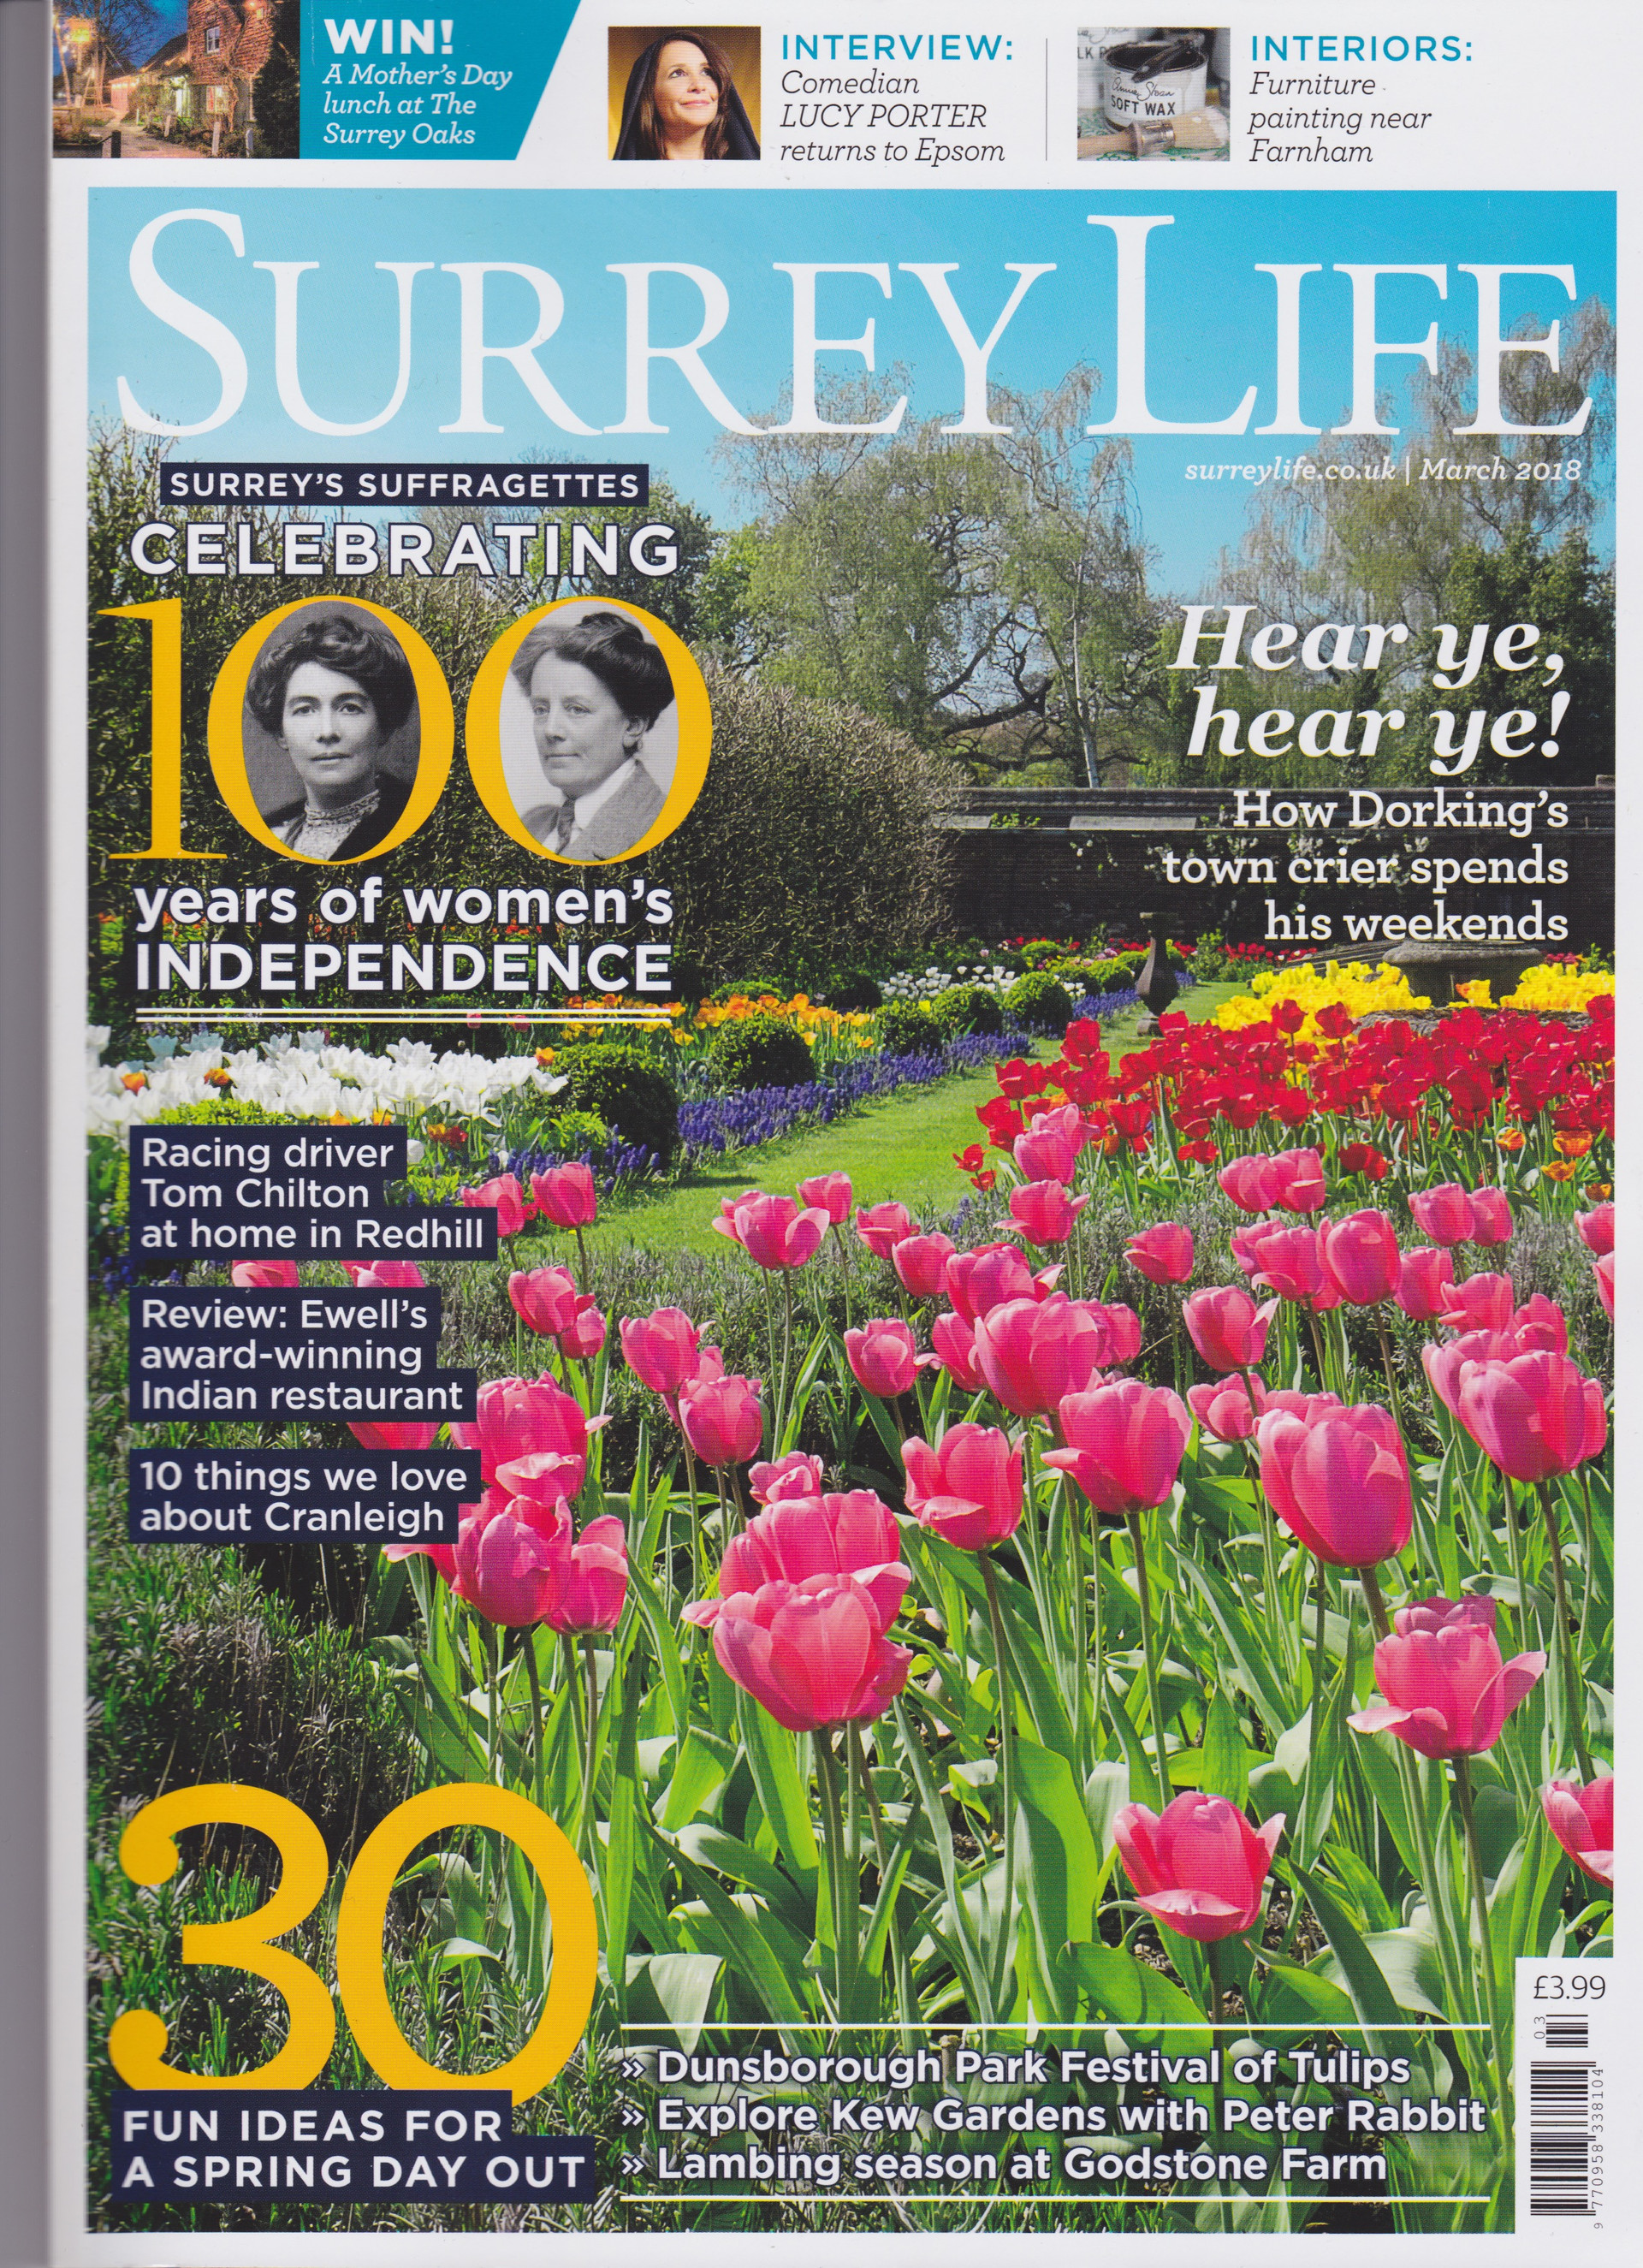 Surrey Life Cover - March 2018